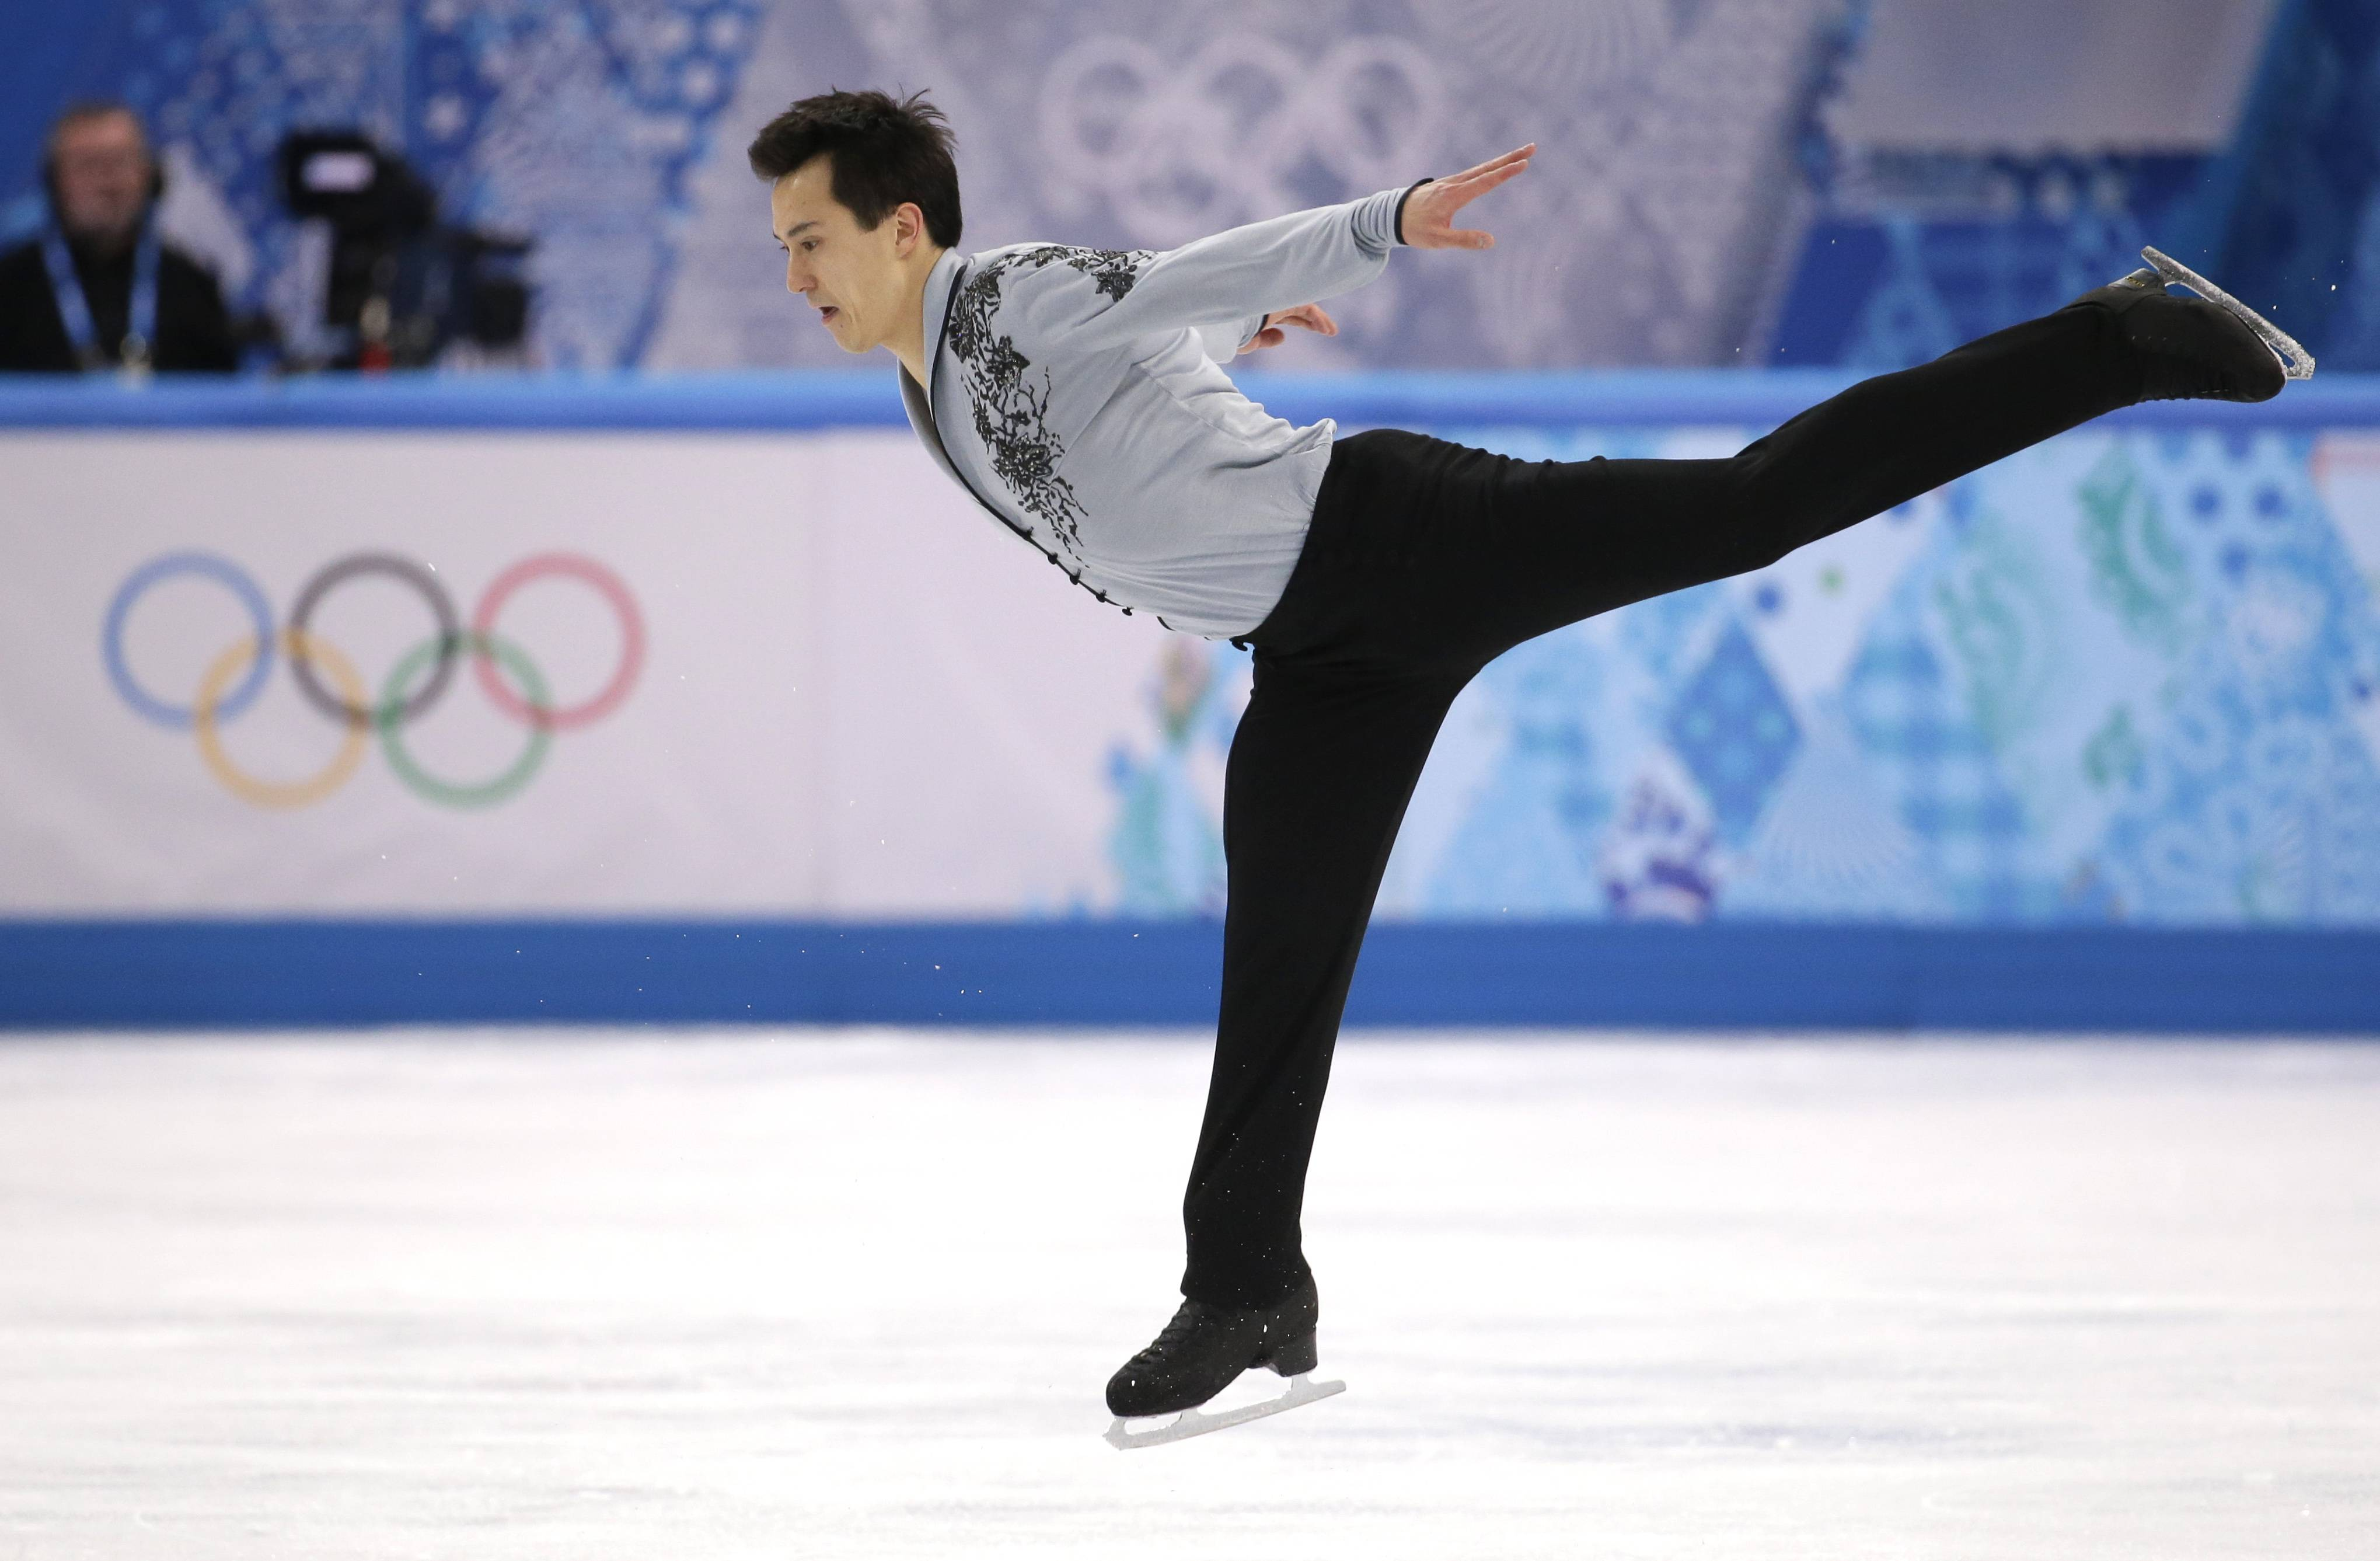 Patrick Chan of Canada competes in the men's free skate figure skating final.